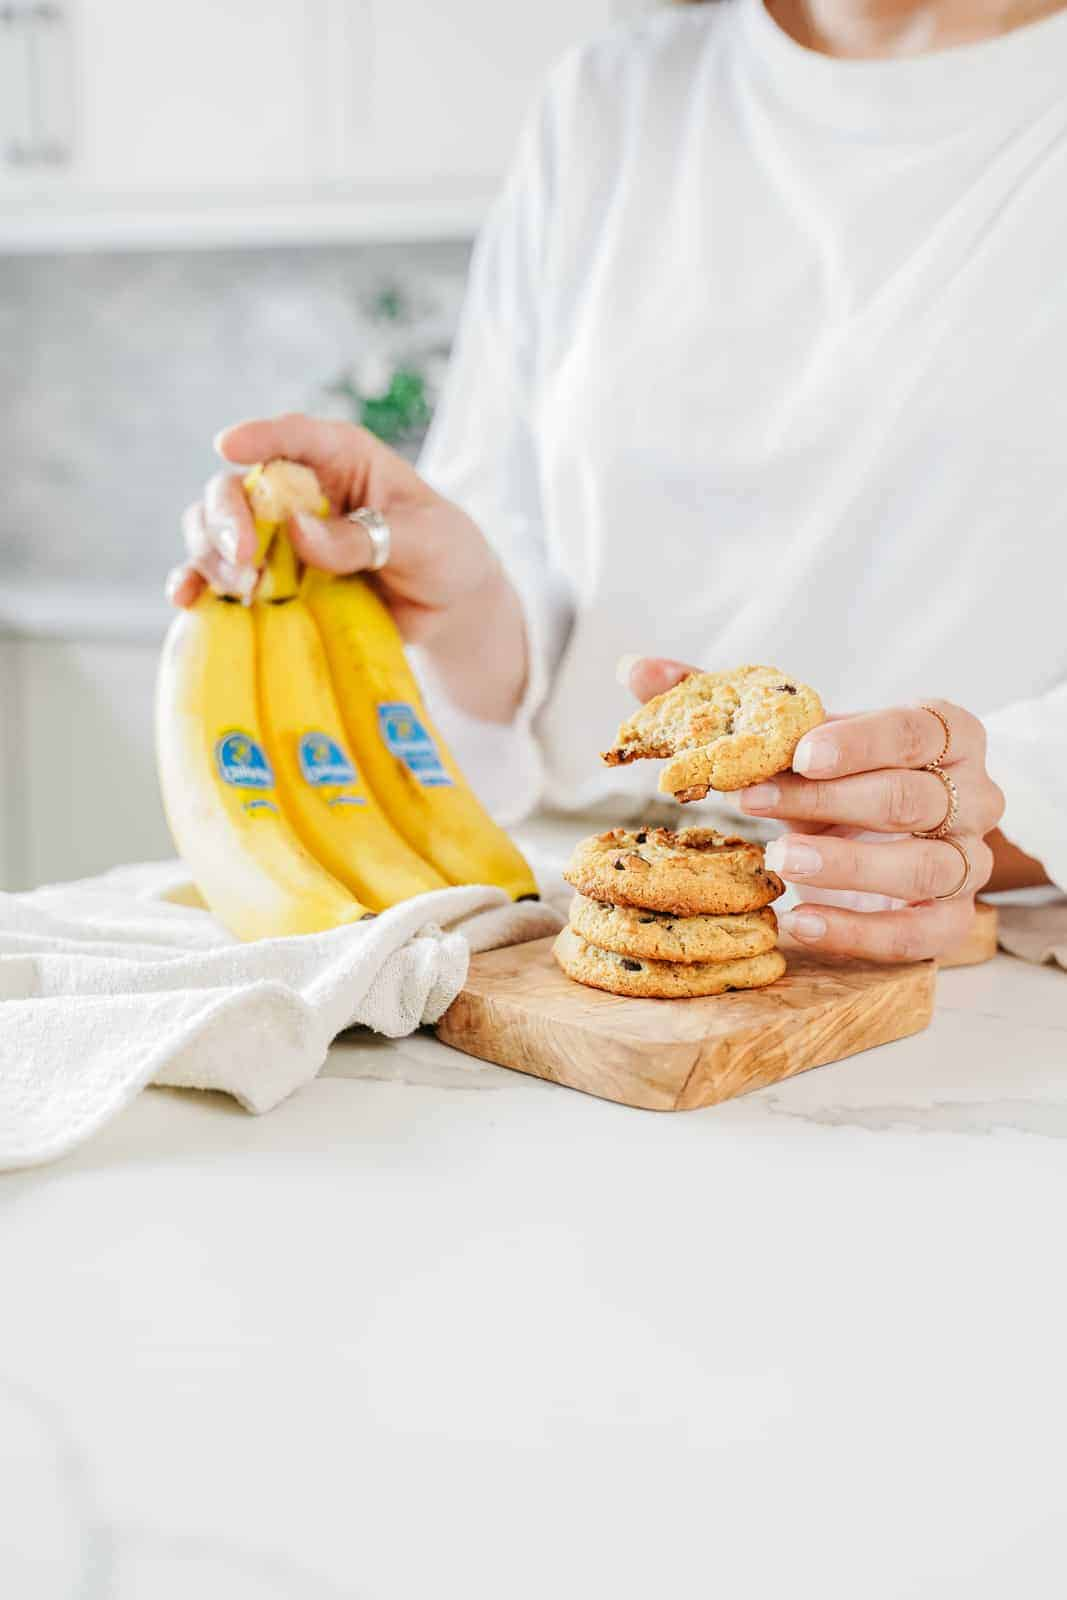 Chiquita Bananas being help on counter with a stack of cookies